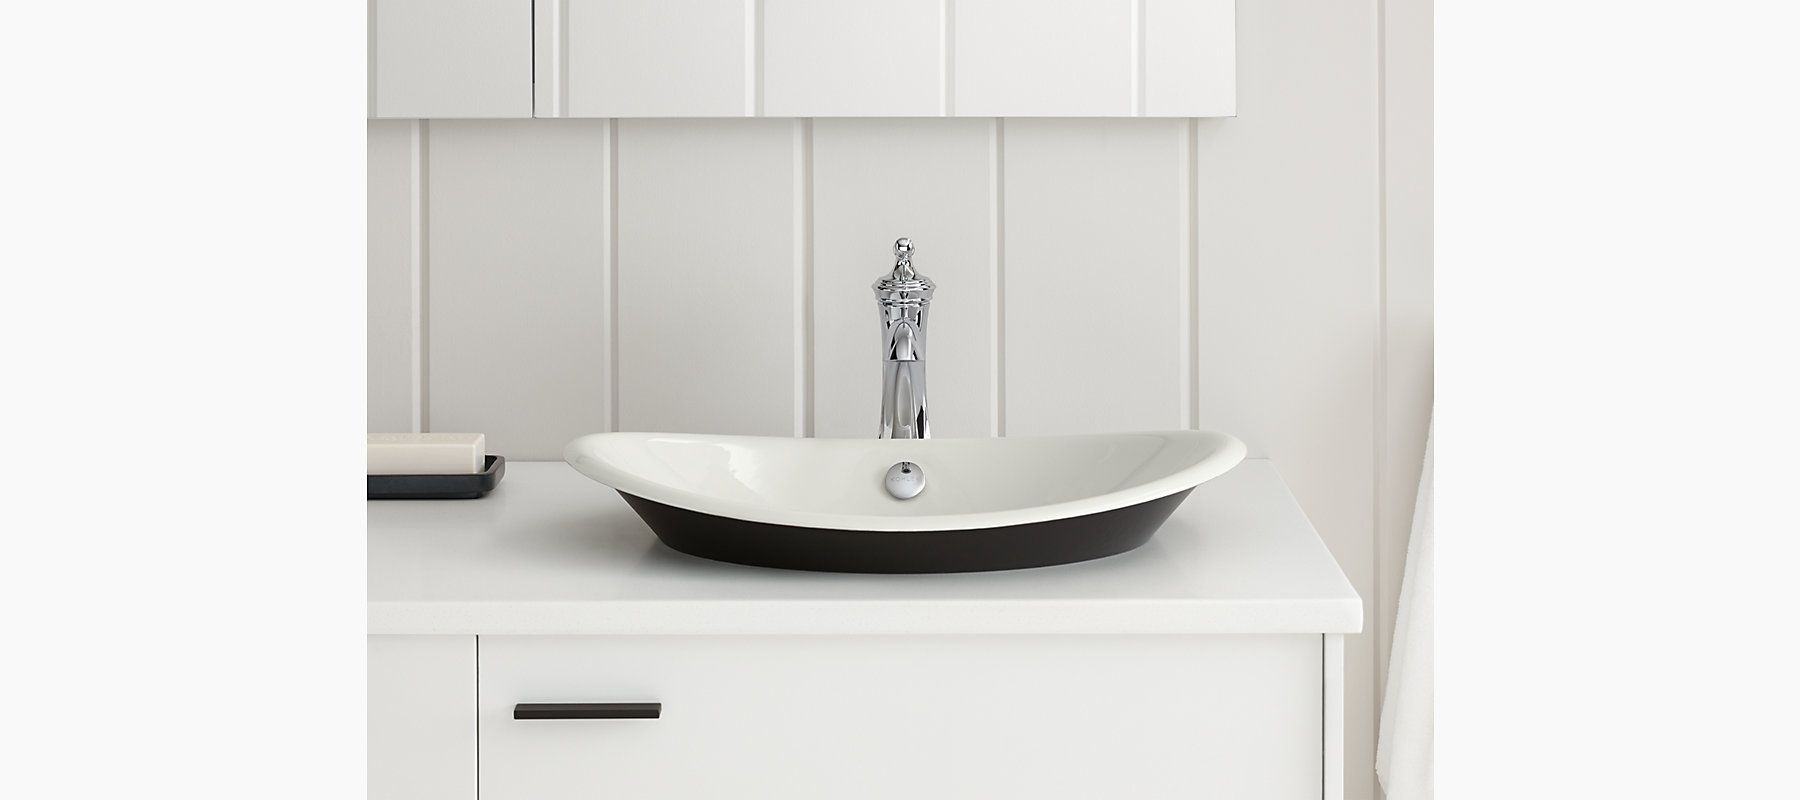 made of enameled cast iron the k5403p5 sink features a